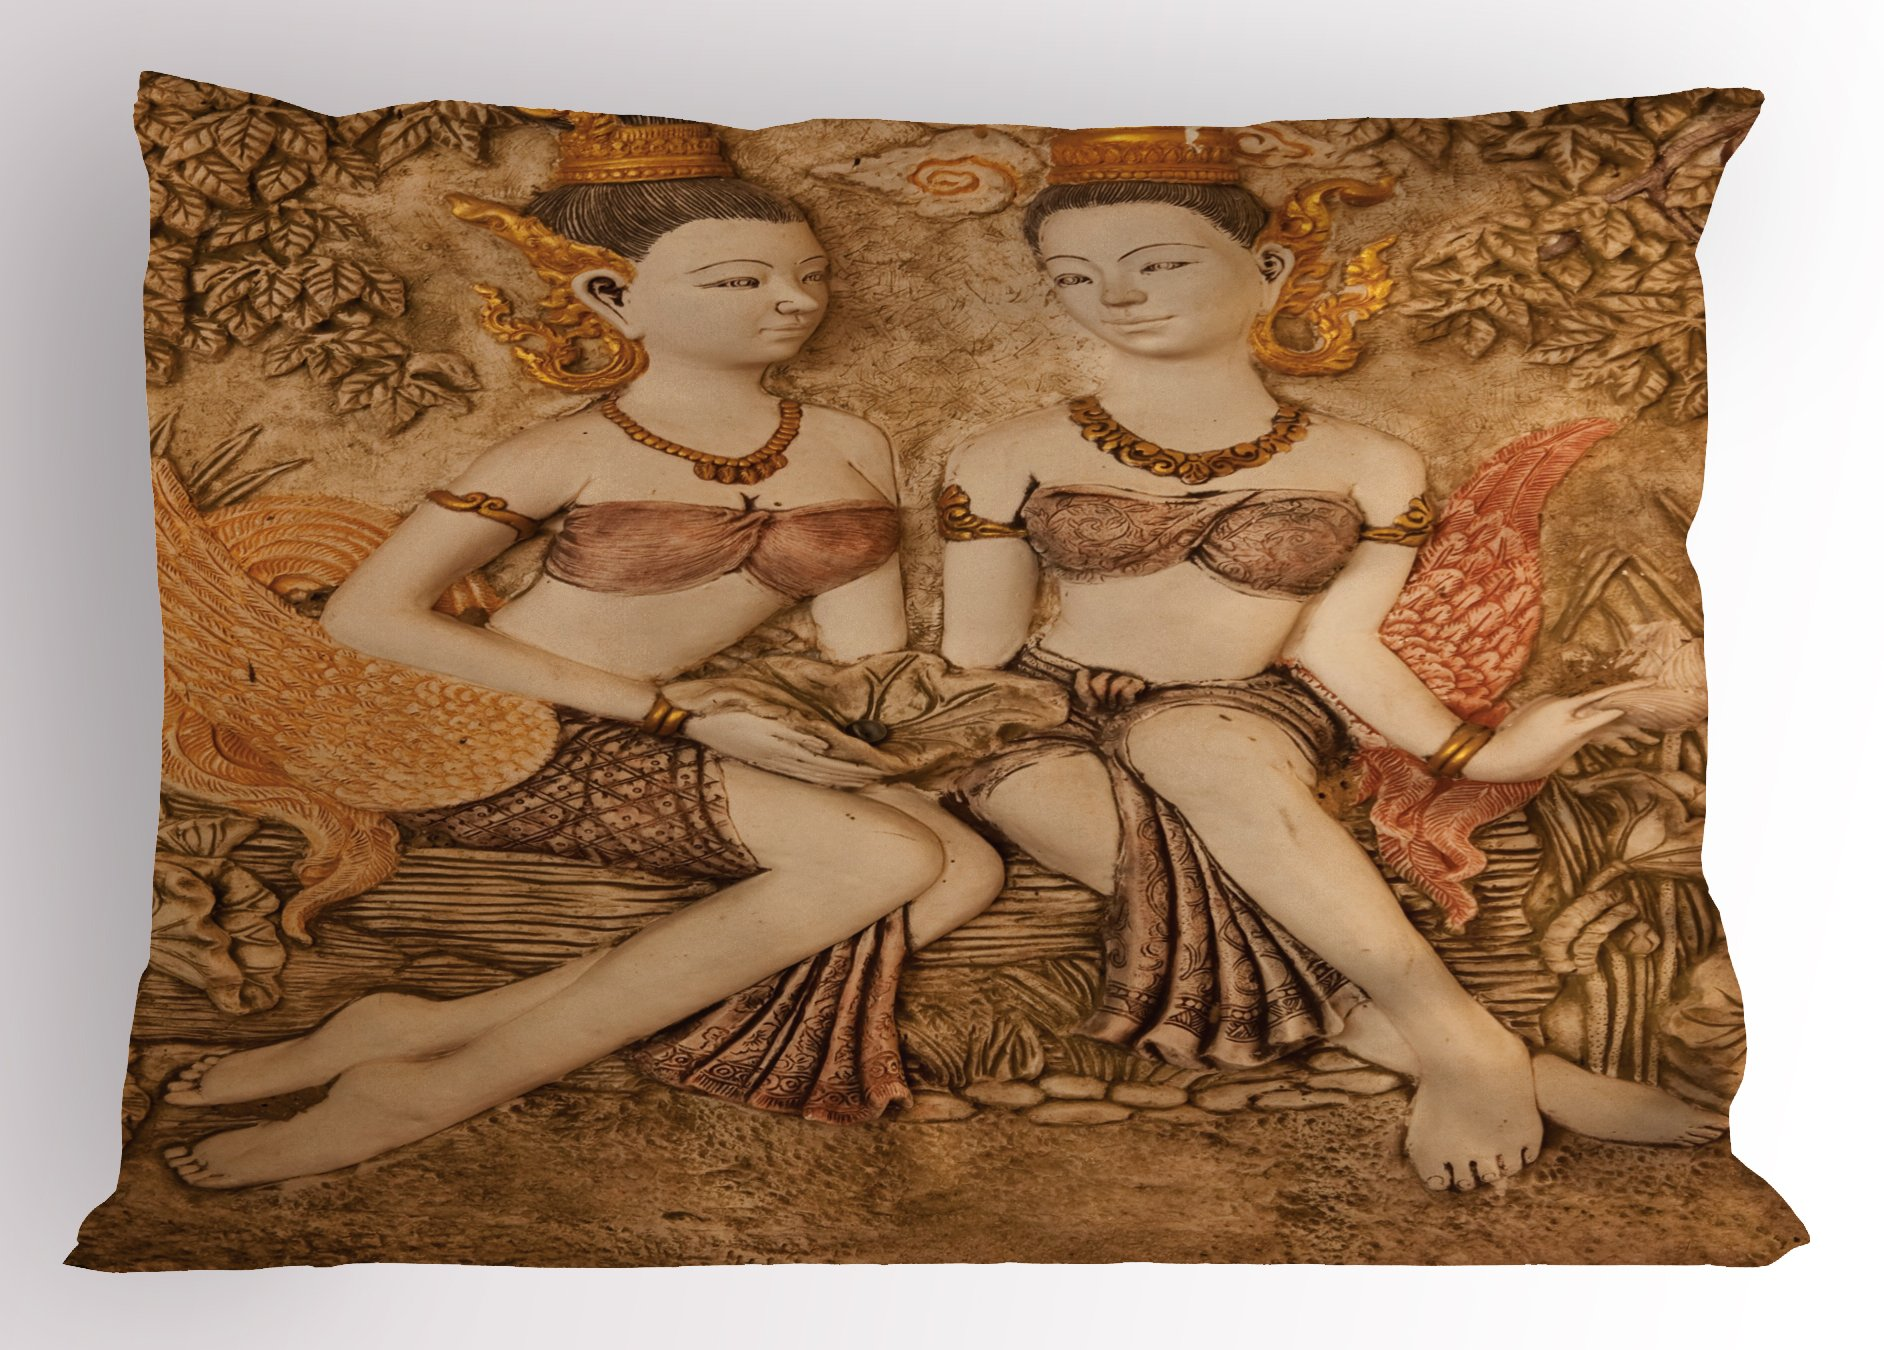 Lunarable Sculptures Pillow Sham, Native Thai Style Molding Art Asian Traditional Attire Temple Culture, Decorative Standard King Size Printed Pillowcase, 36 X 20 inches, Beige Brown Mustard by Lunarable